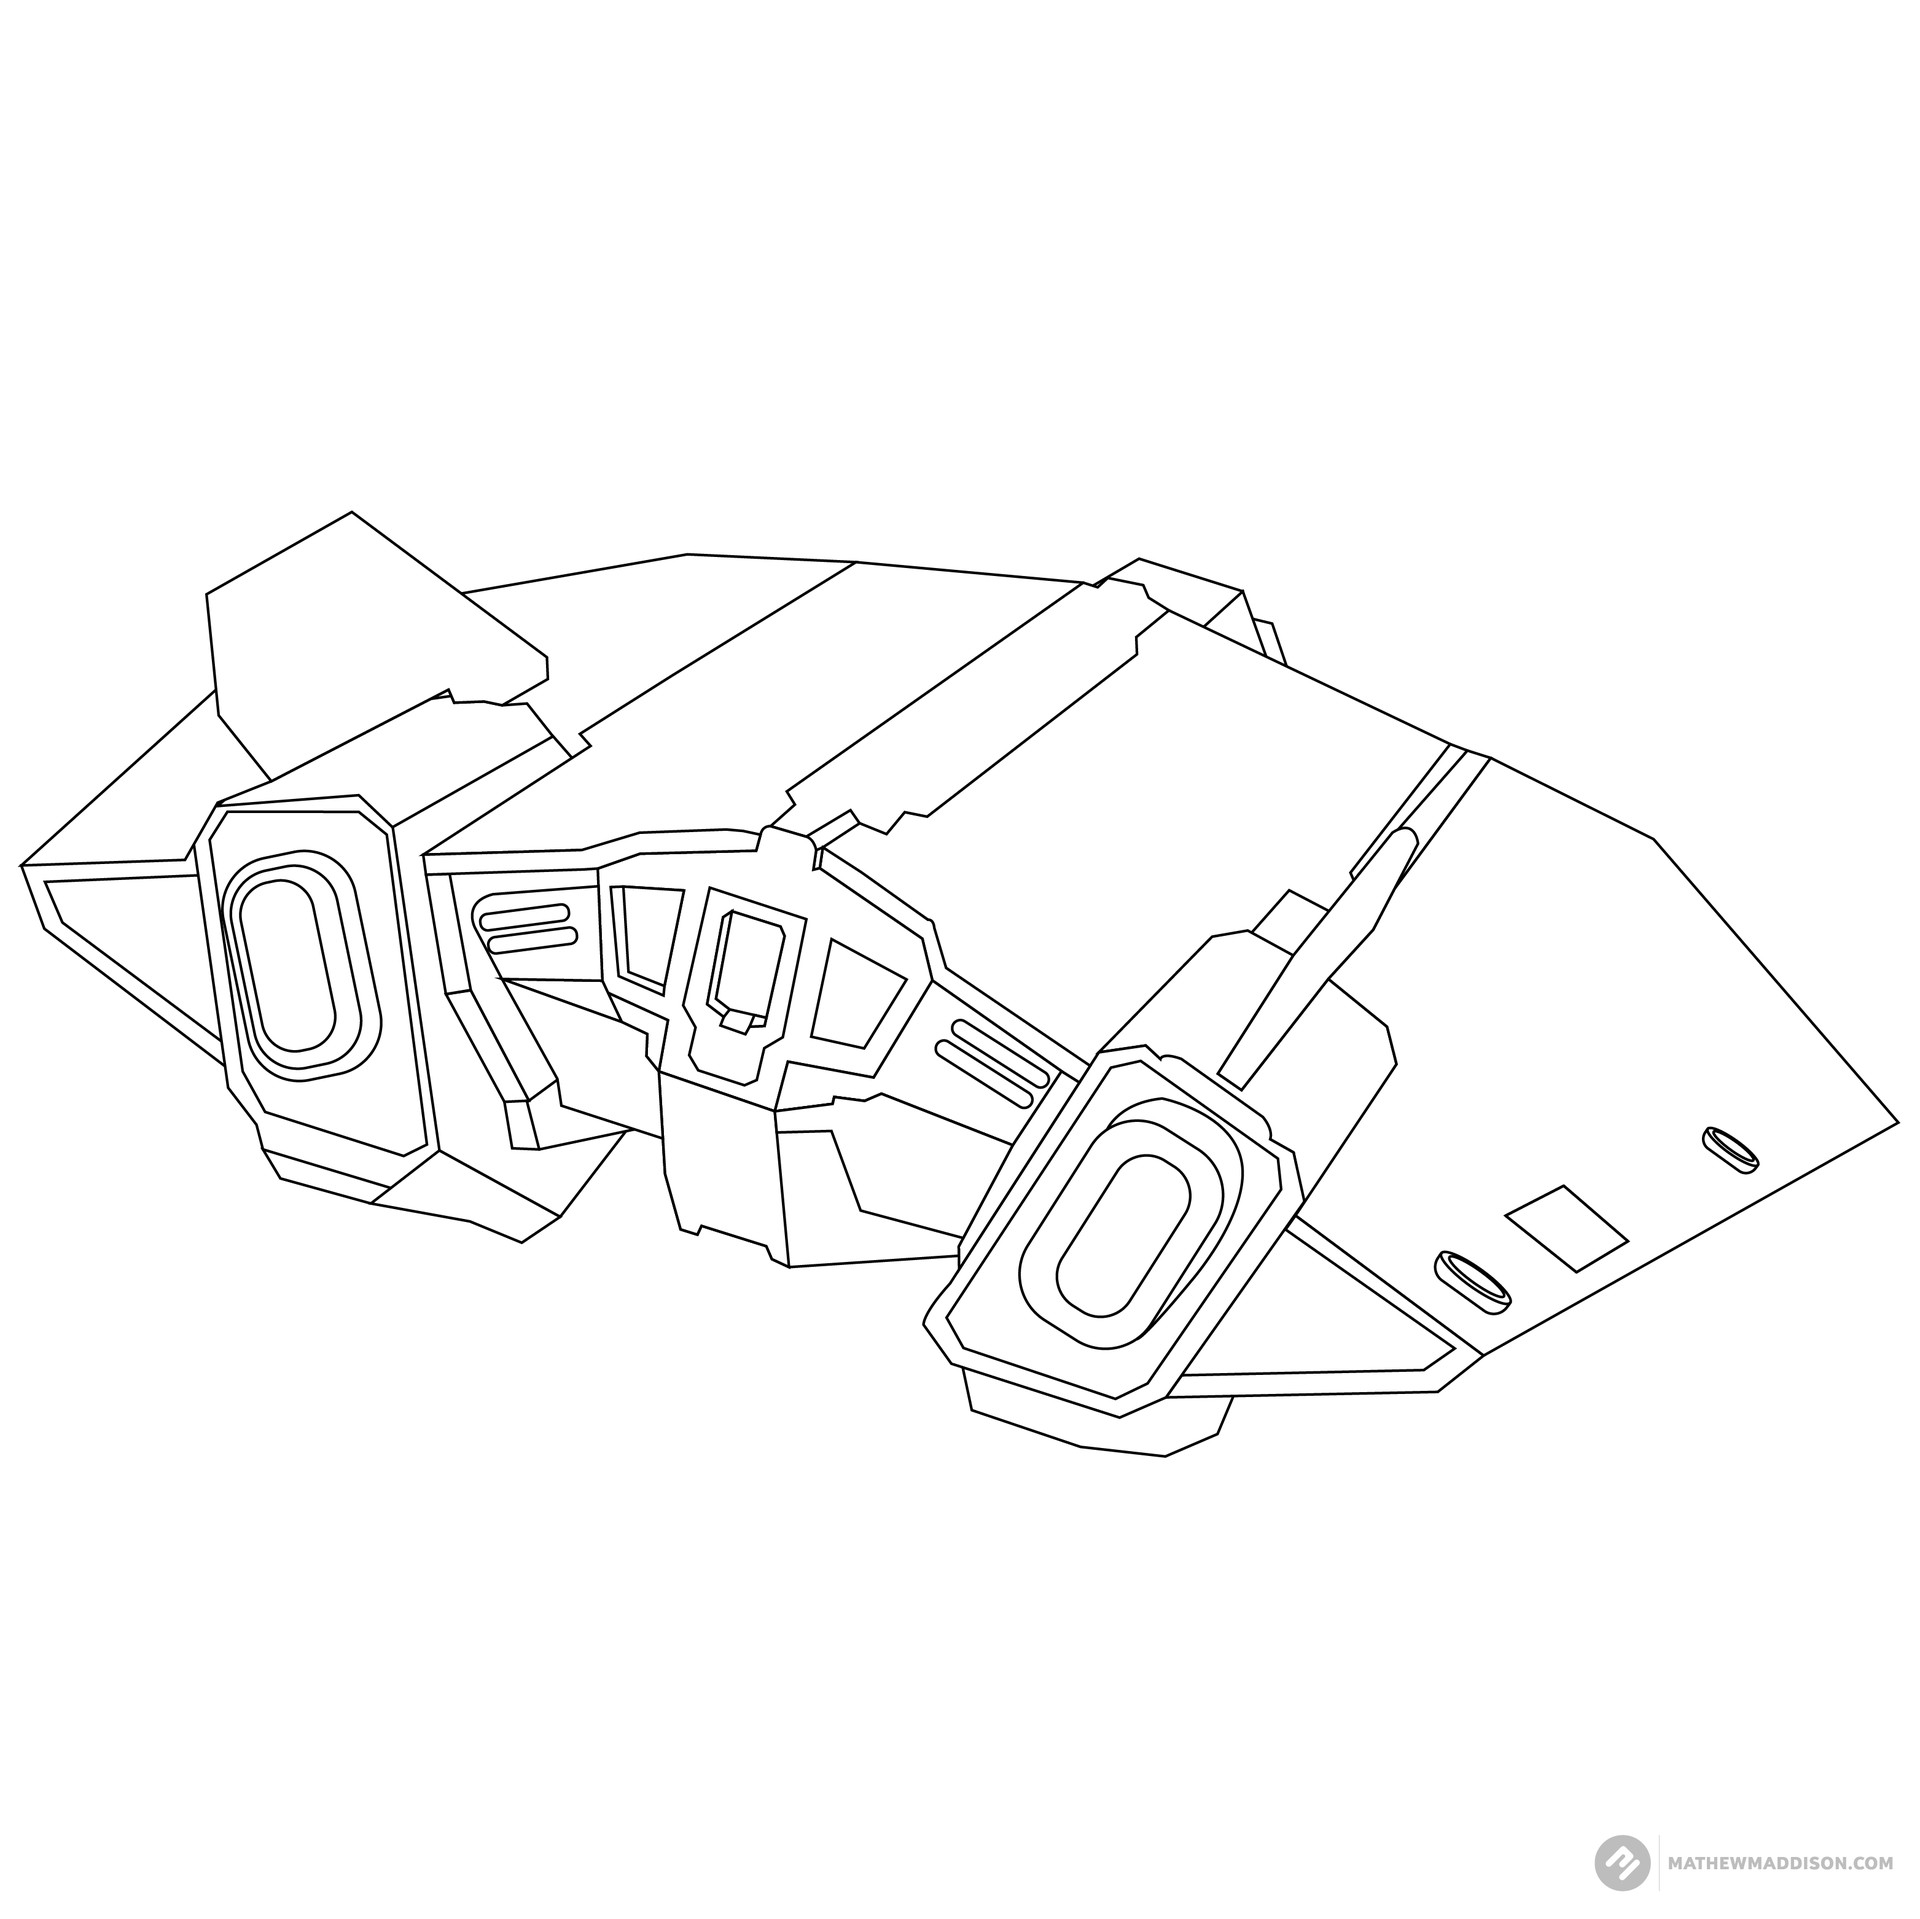 Mathew maddison elite ship no colours by mathew maddsion 09